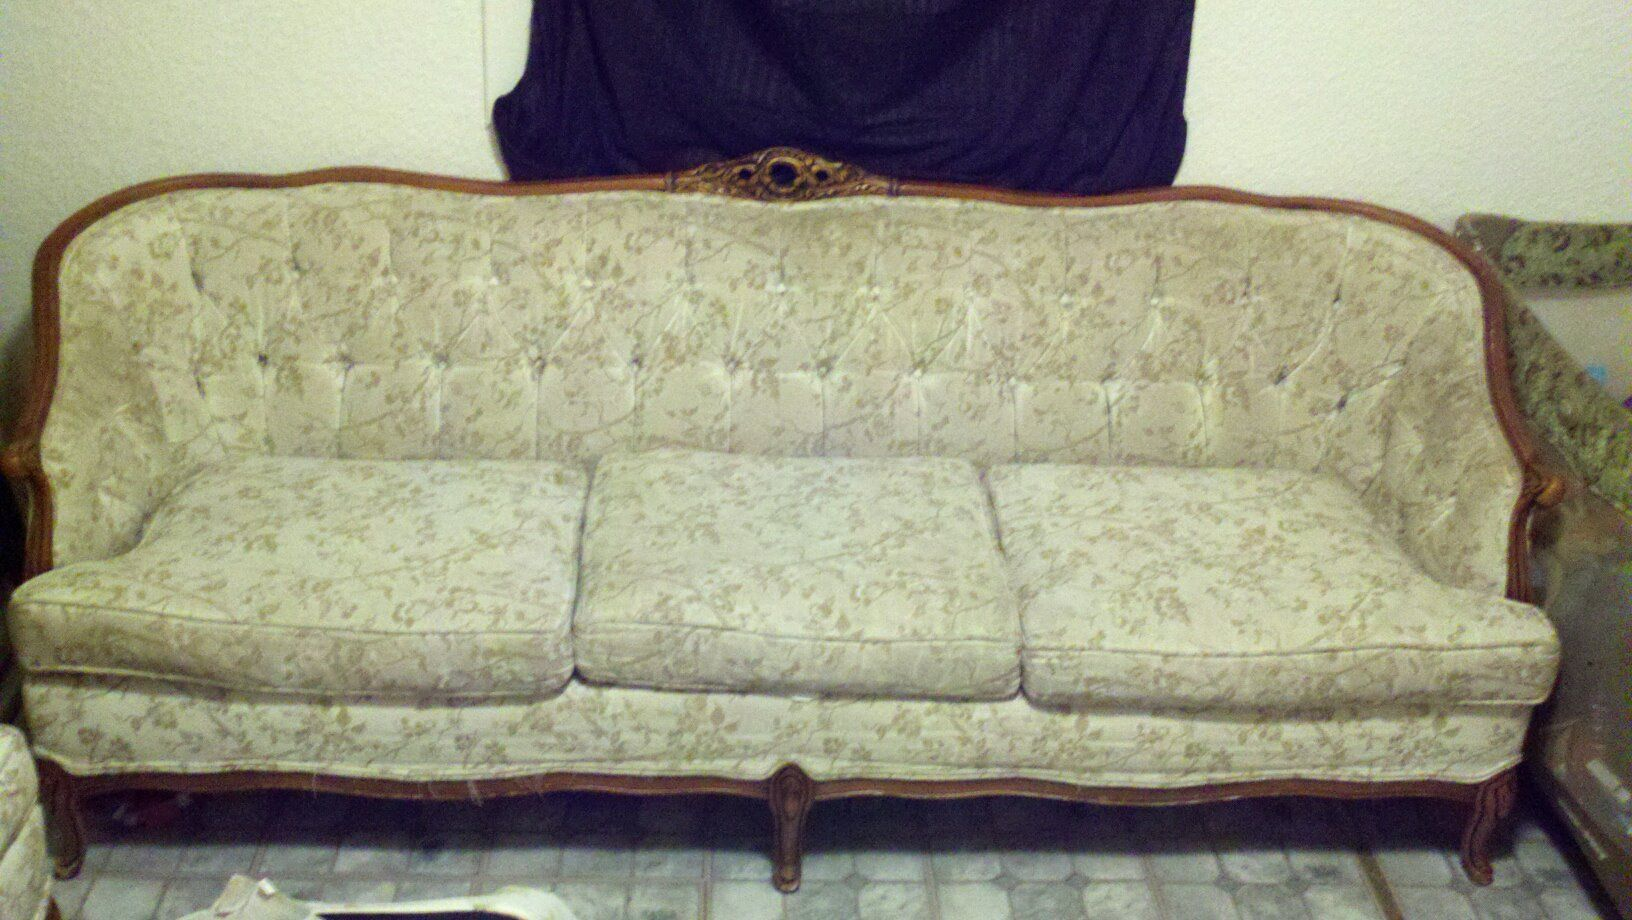 how much fabric to recover a camelback sofa online kaufen erfahrungen reupholster couch the i want